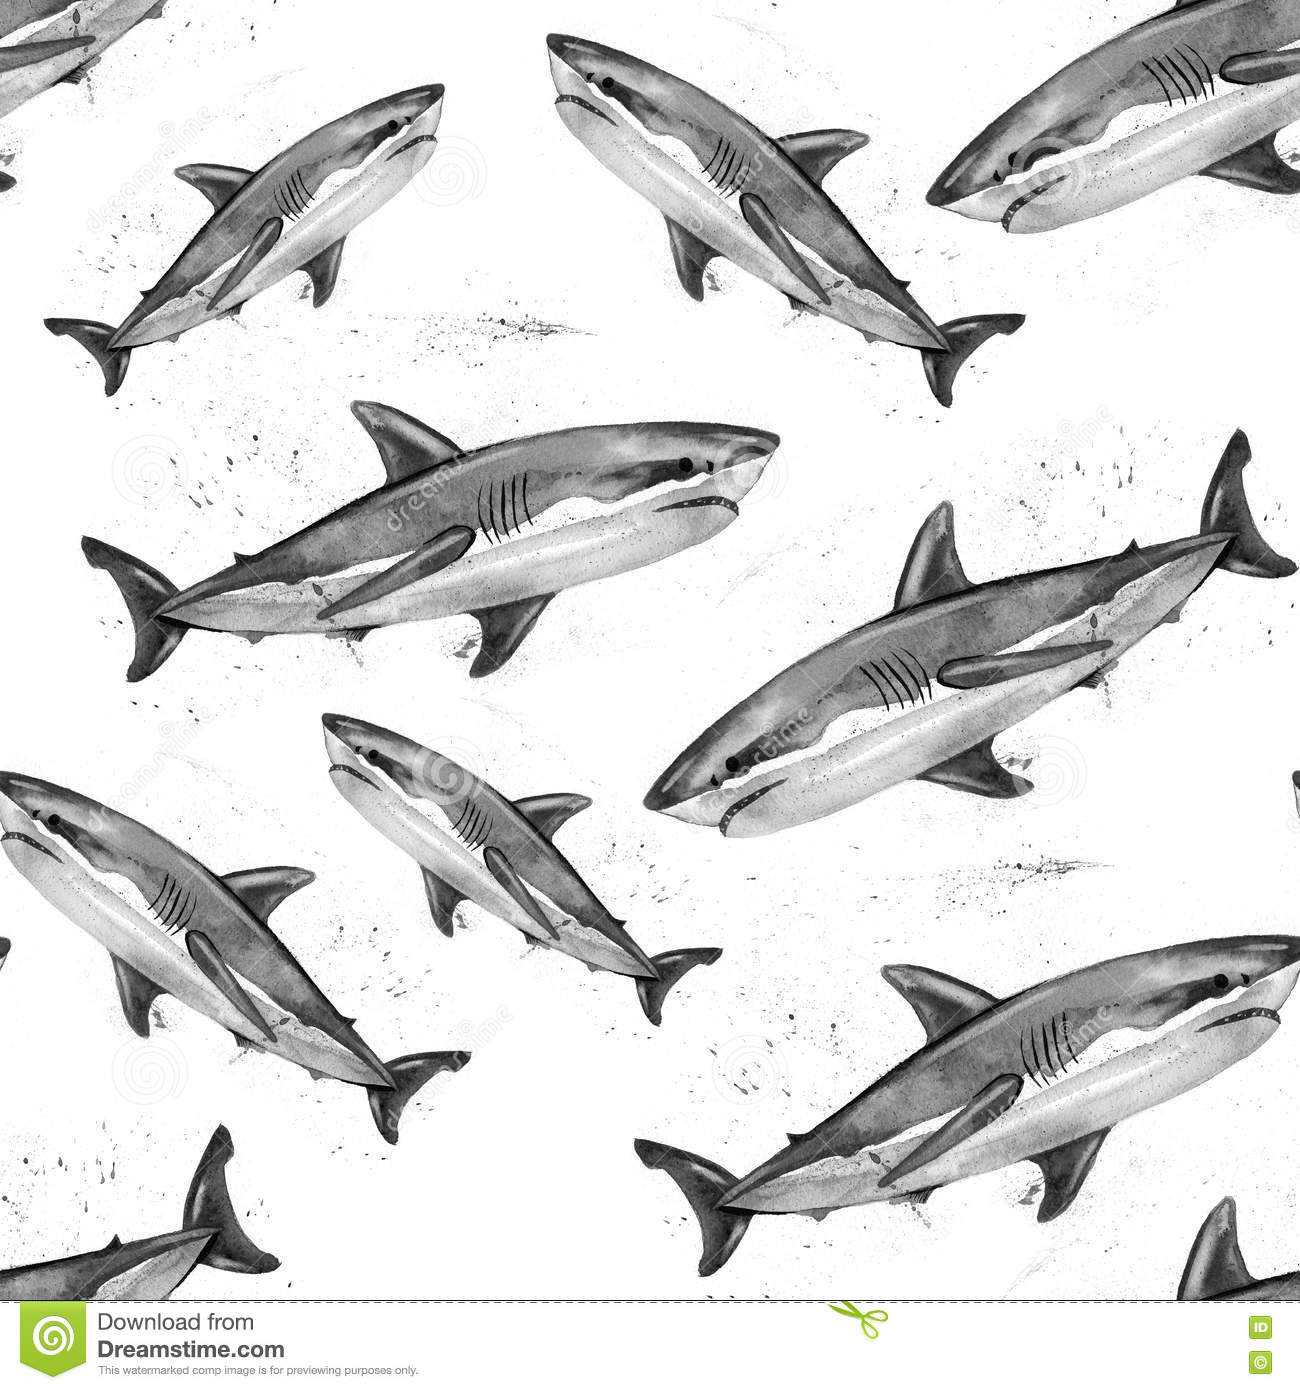 Watercolor great white shark pattern.